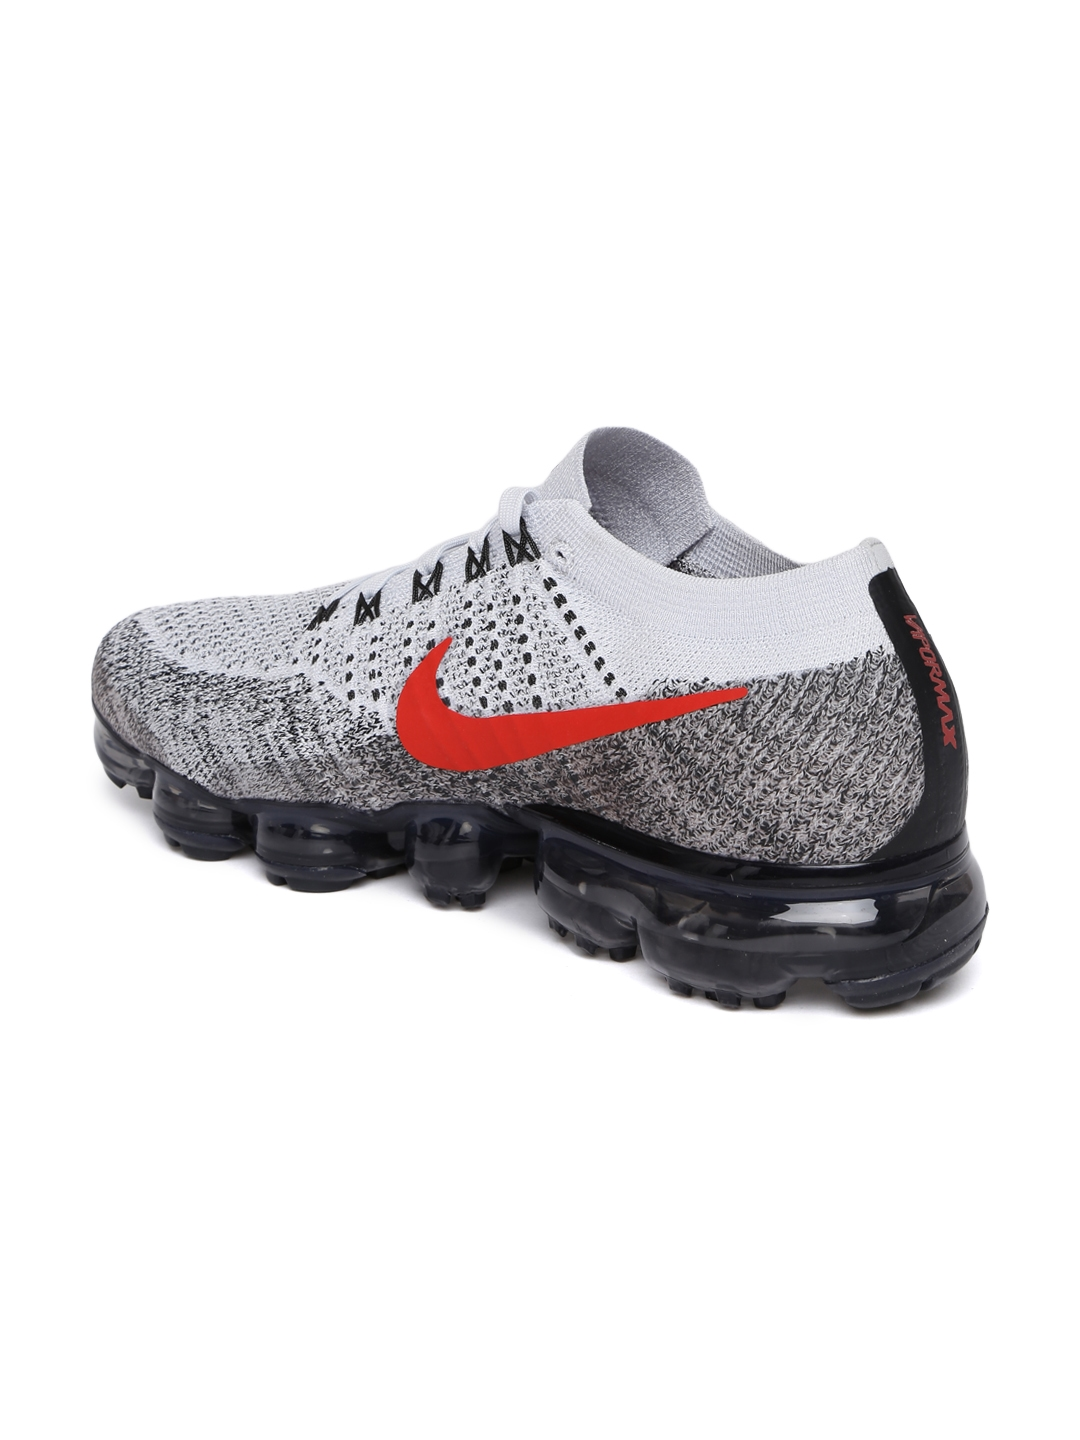 2414651cc4c Buy Nike Men Grey AIR VAPORMAX FLYKNIT Running Shoes - Sports Shoes ...